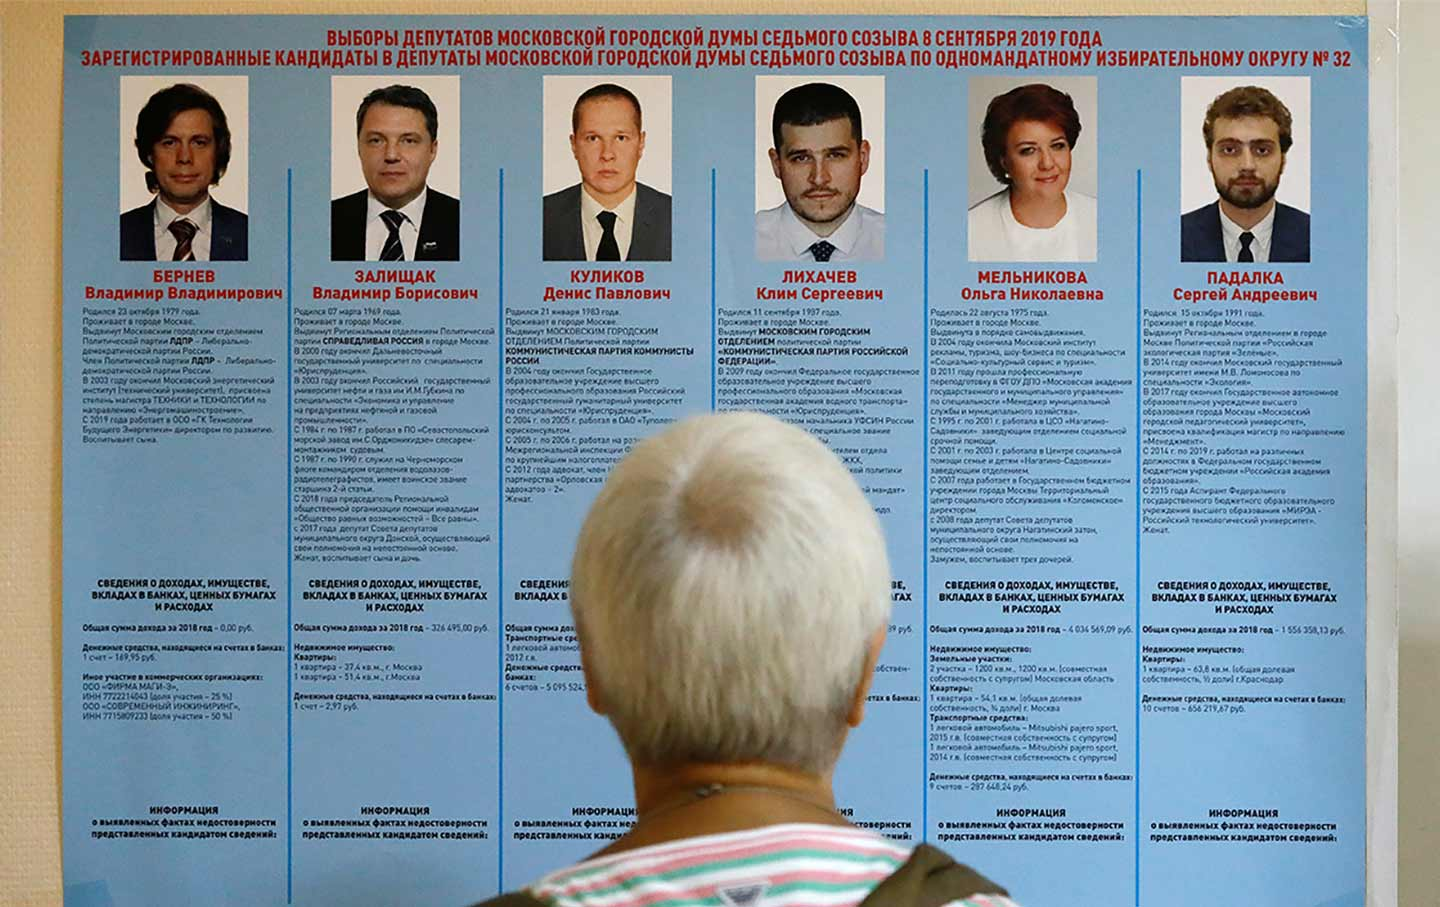 russia-moscow-election-rtr-img